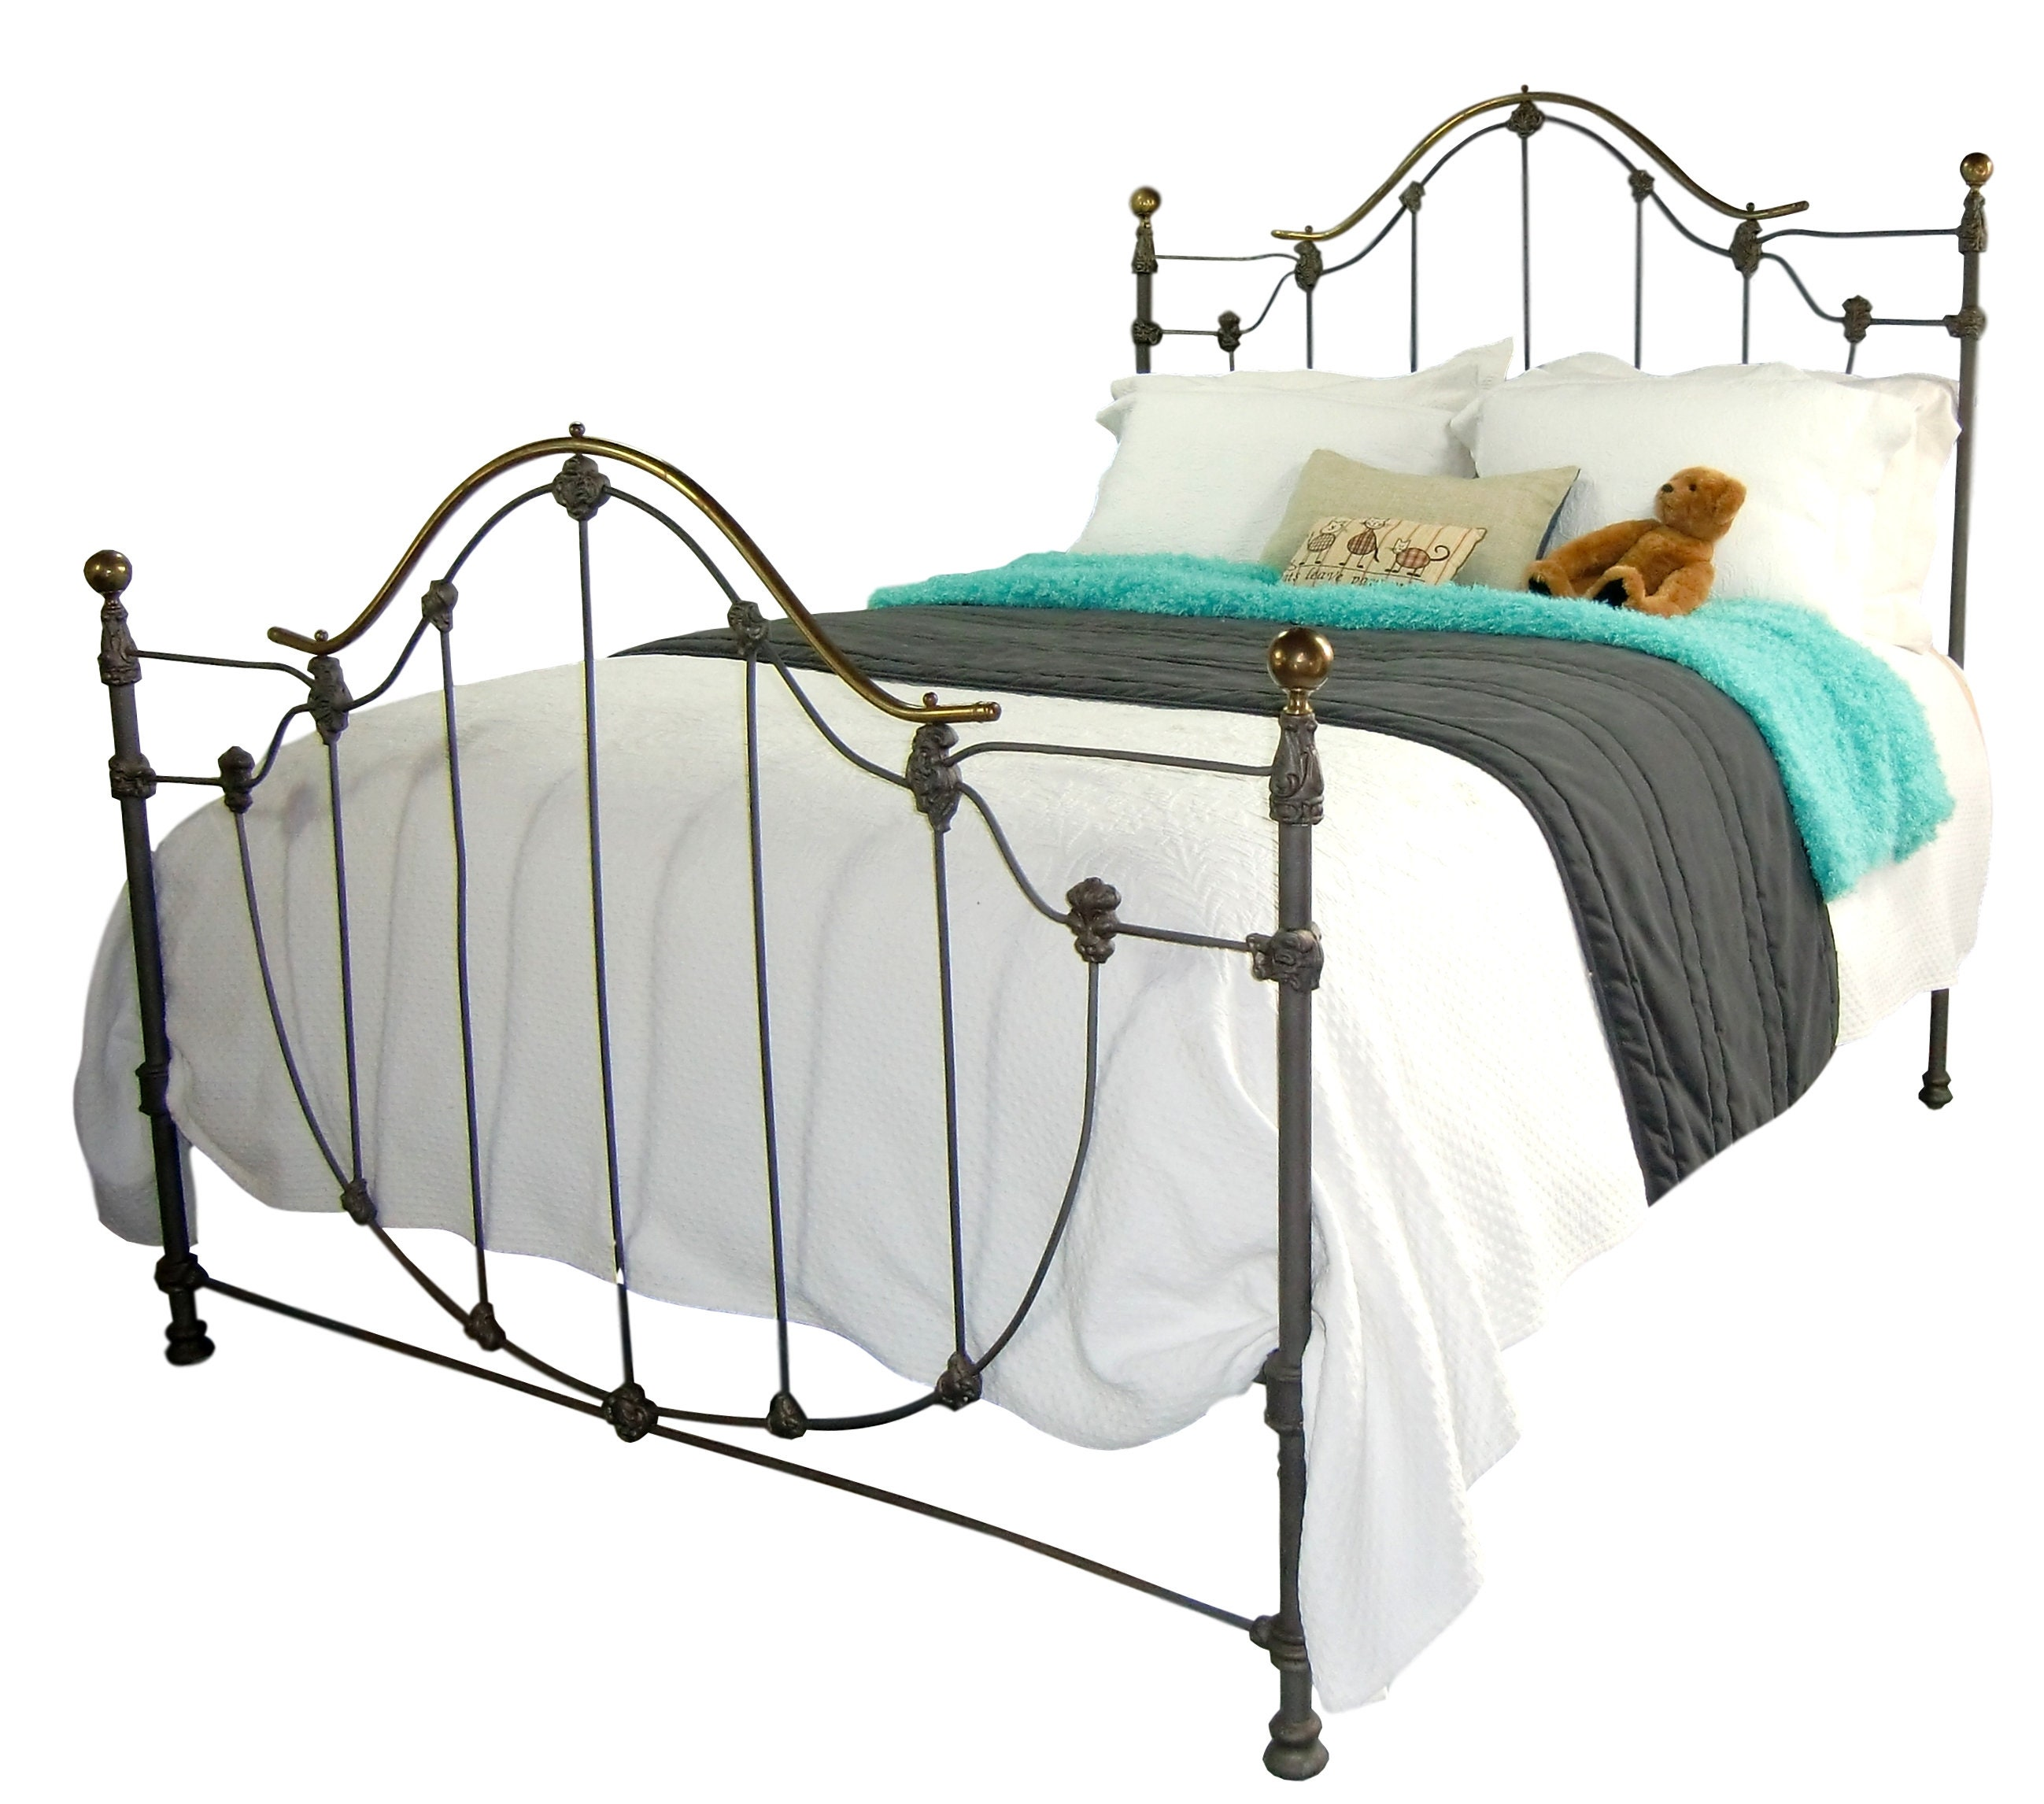 queen antique cast iron bed frame ornate victorian bed etsy. Black Bedroom Furniture Sets. Home Design Ideas